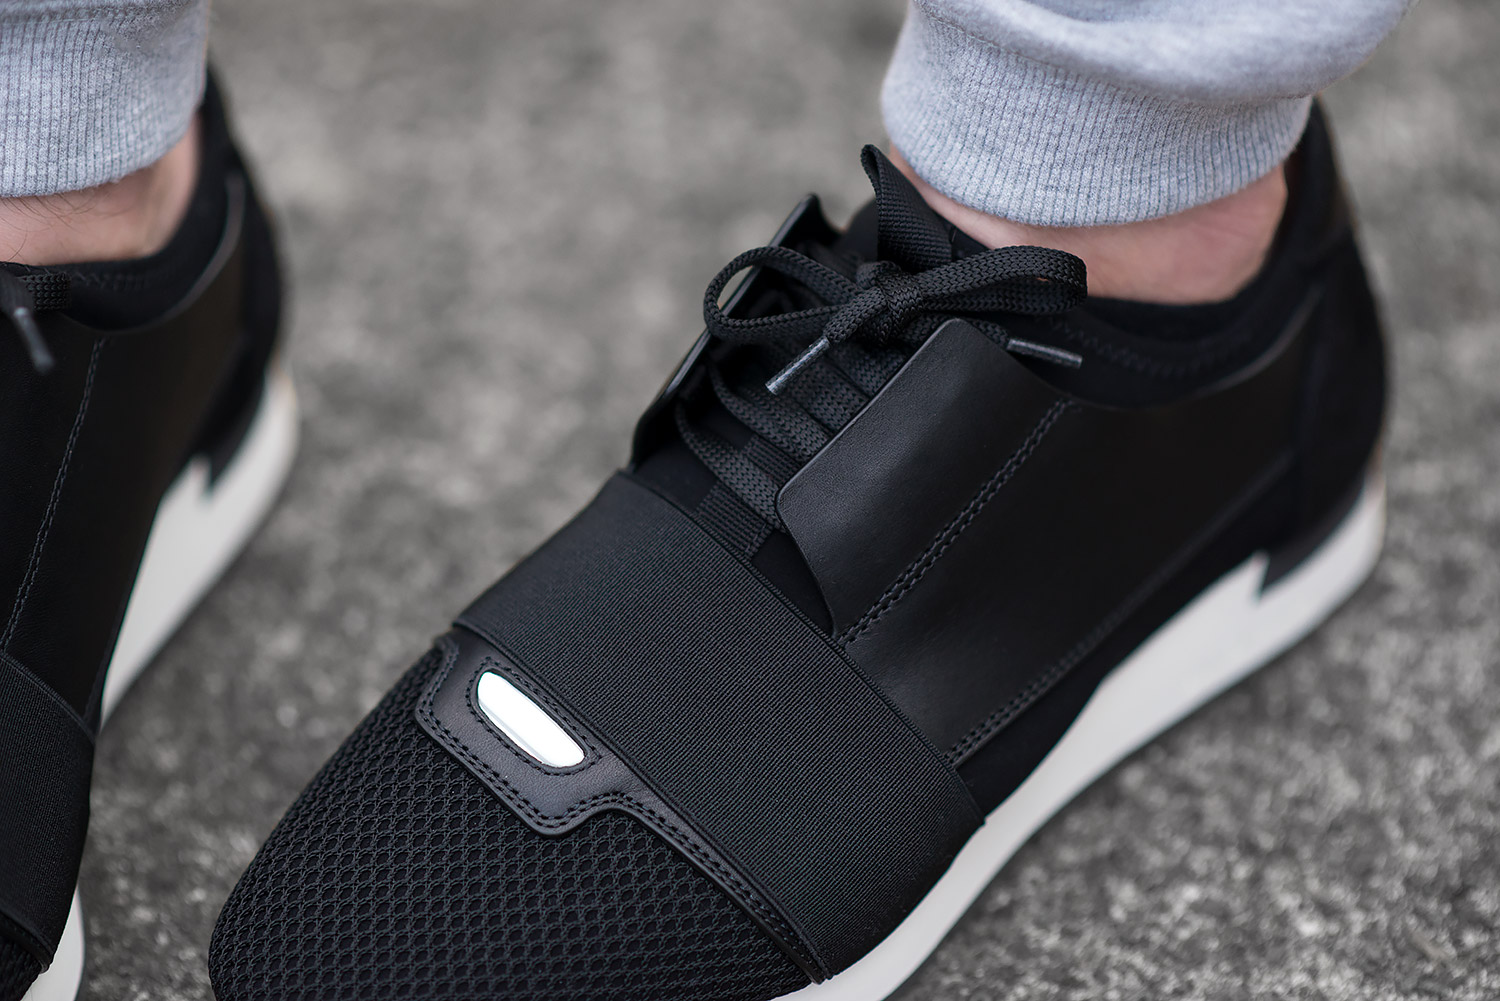 2a2392066d7 P.S. – These shoes are highly faked everywhere so be very careful when you  buy yours online. Only order from the trusted retailers I have linked to  (or ...